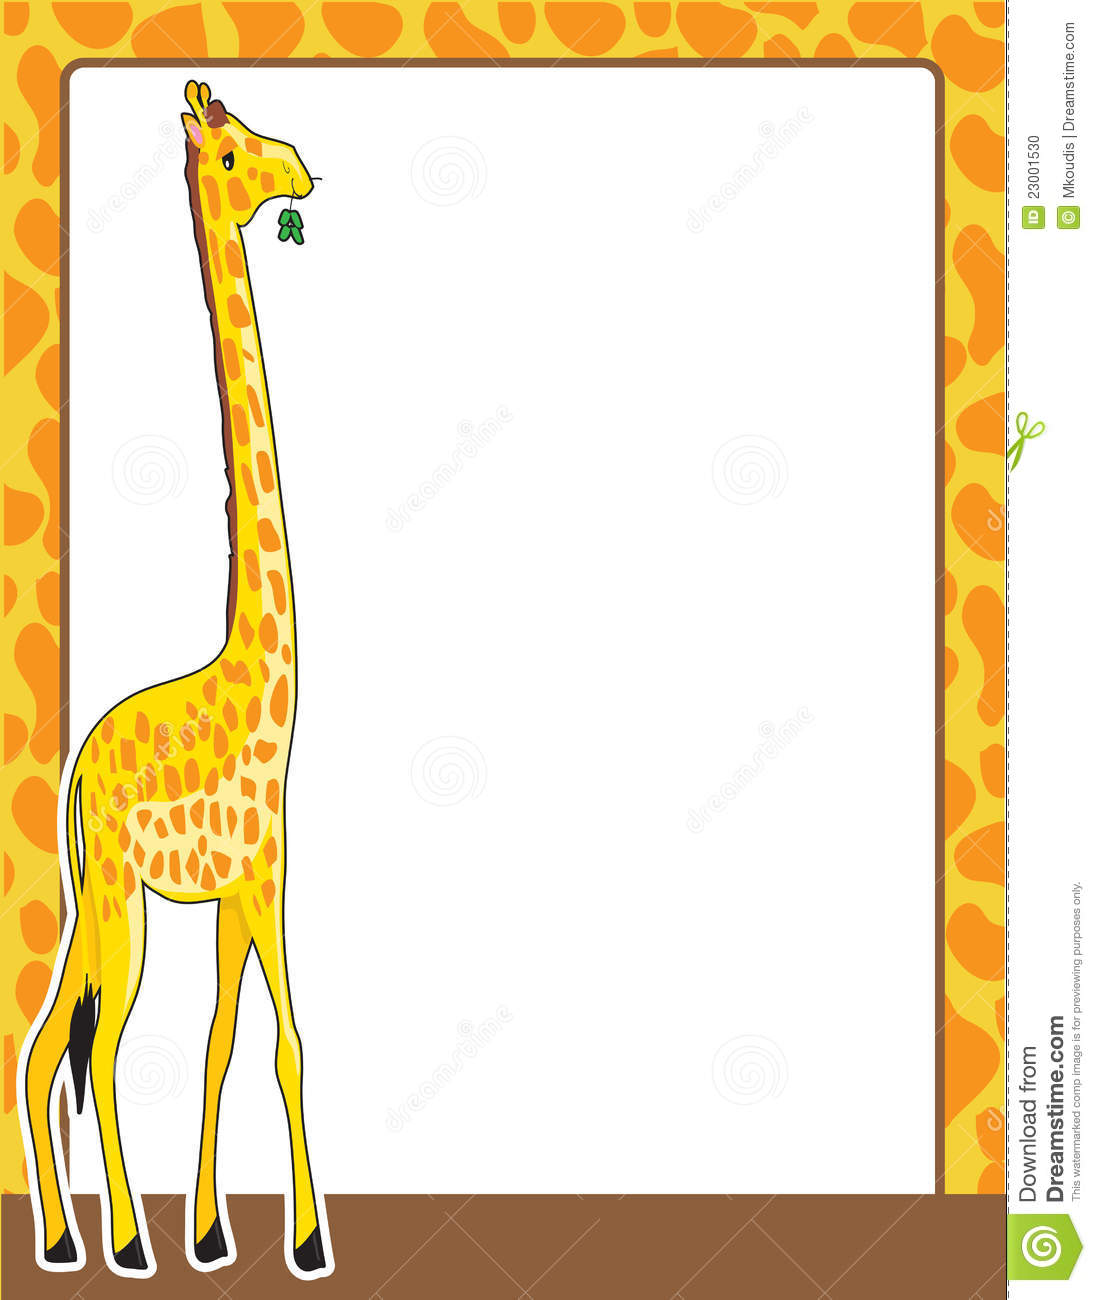 border framed in a pattern, resembling that of the giraffe standing ...